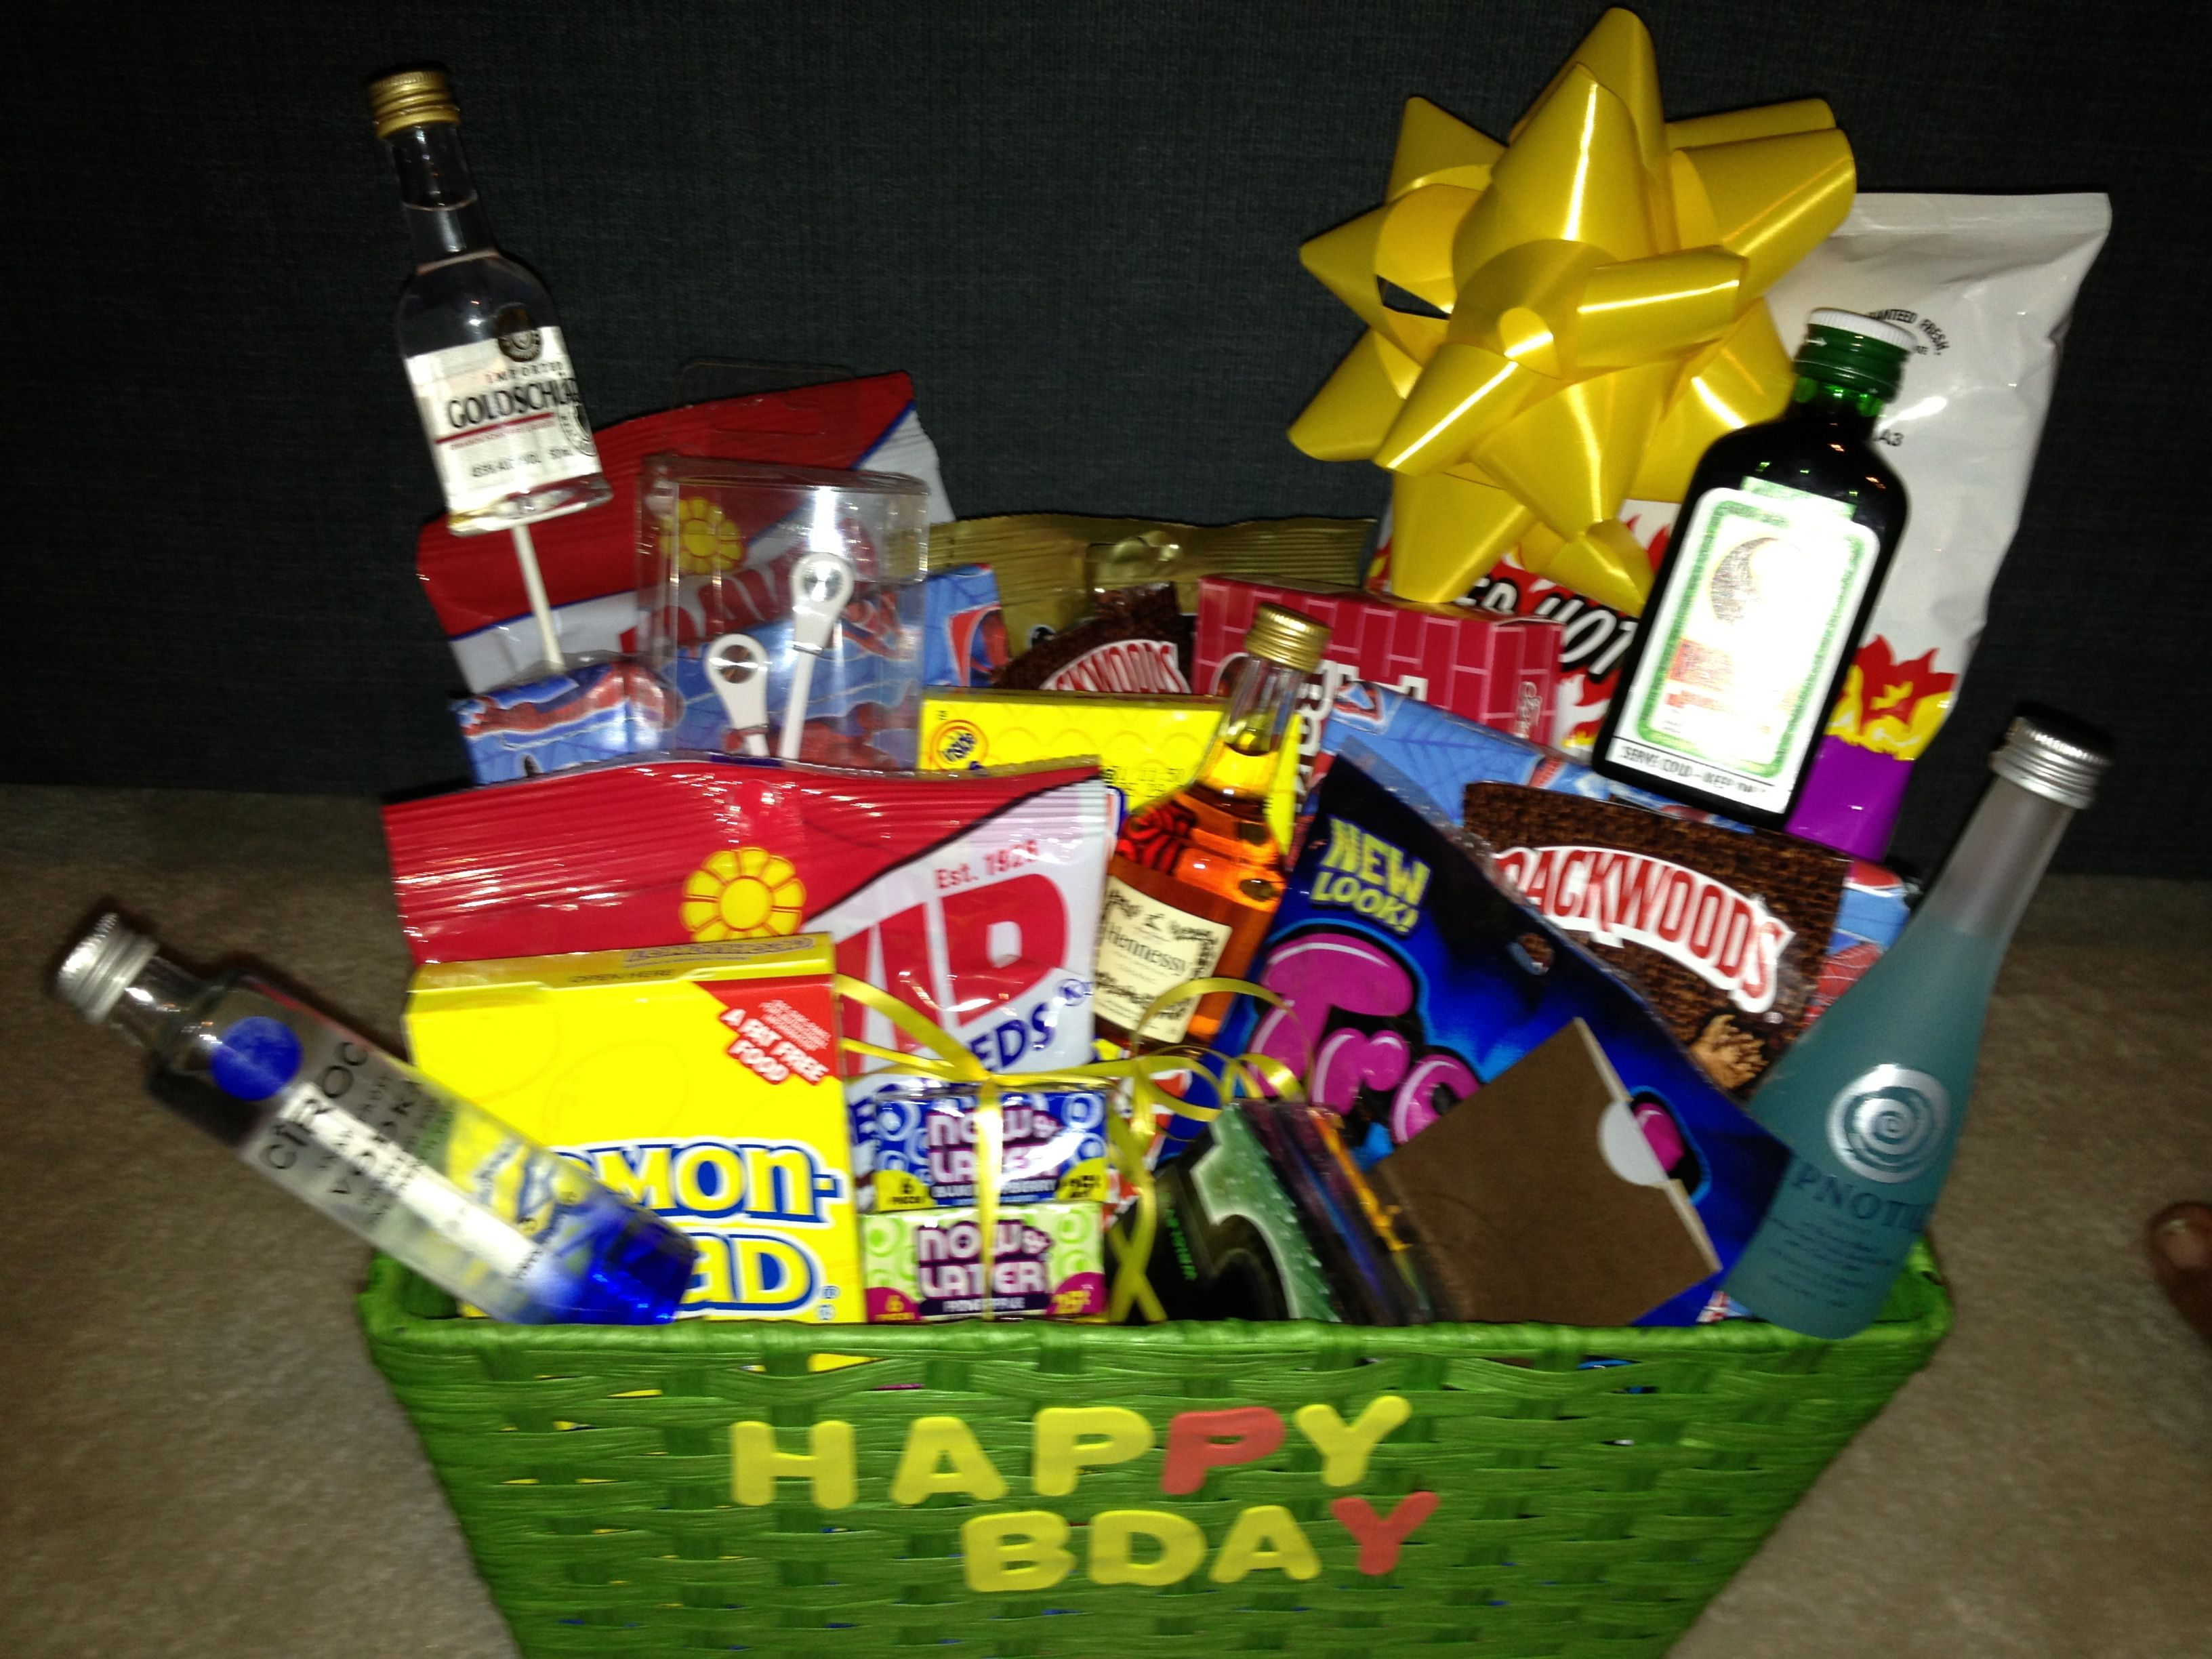 boyfriend birthday gift basket gift ideas pinterest birthday